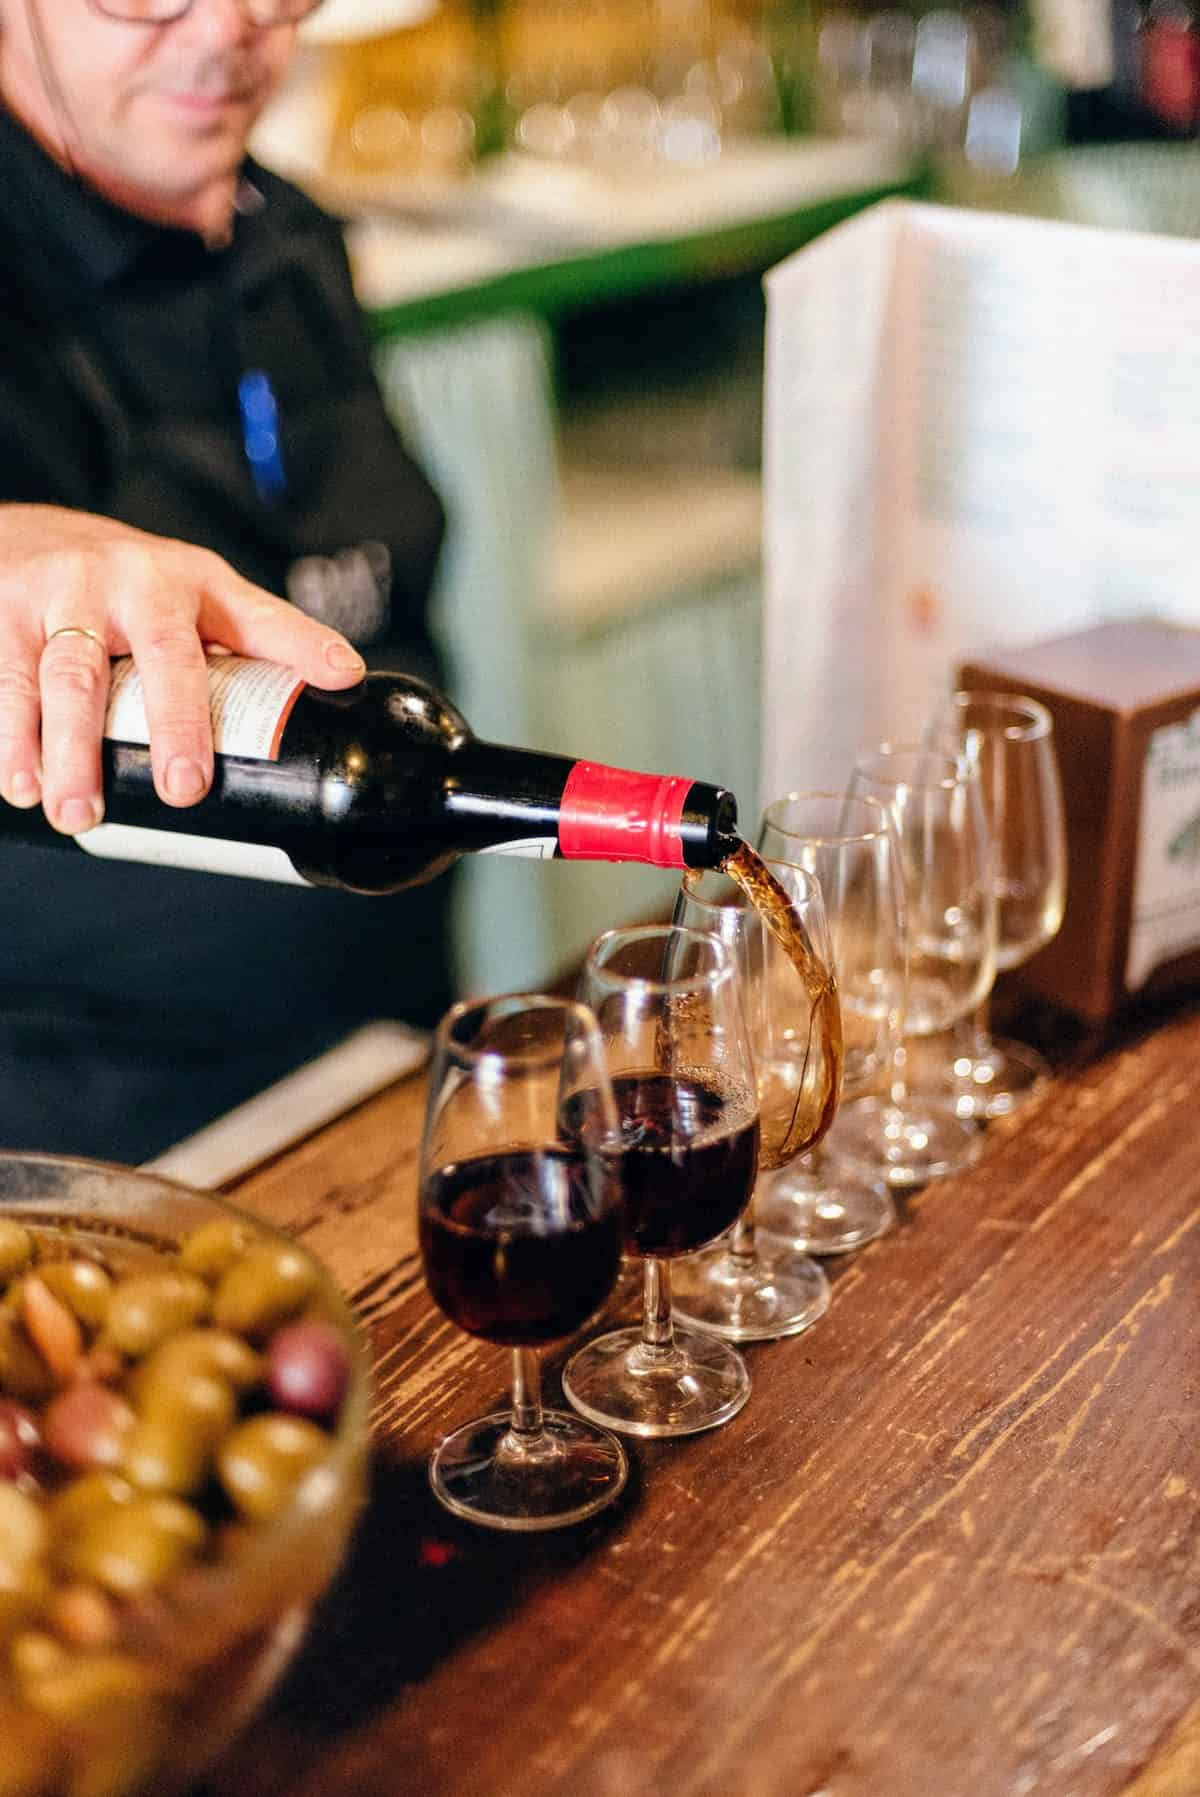 Bartender pouring several glasses of dark brown sherry wine on a wooden bar top